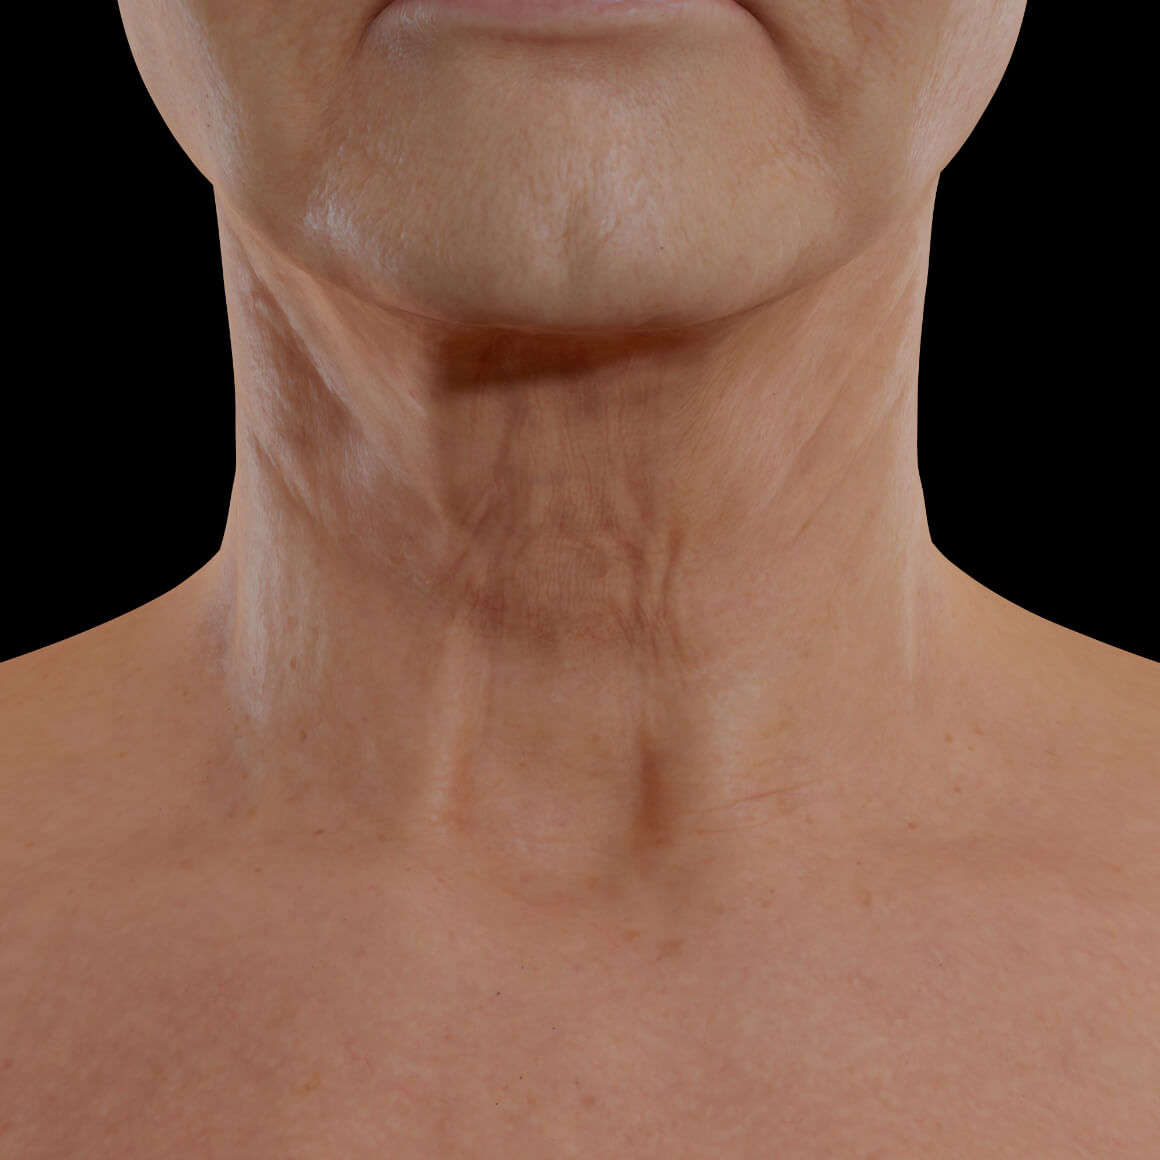 Female patient from Clinique Chloé facing front after Sculptra injections for neck skin tightening